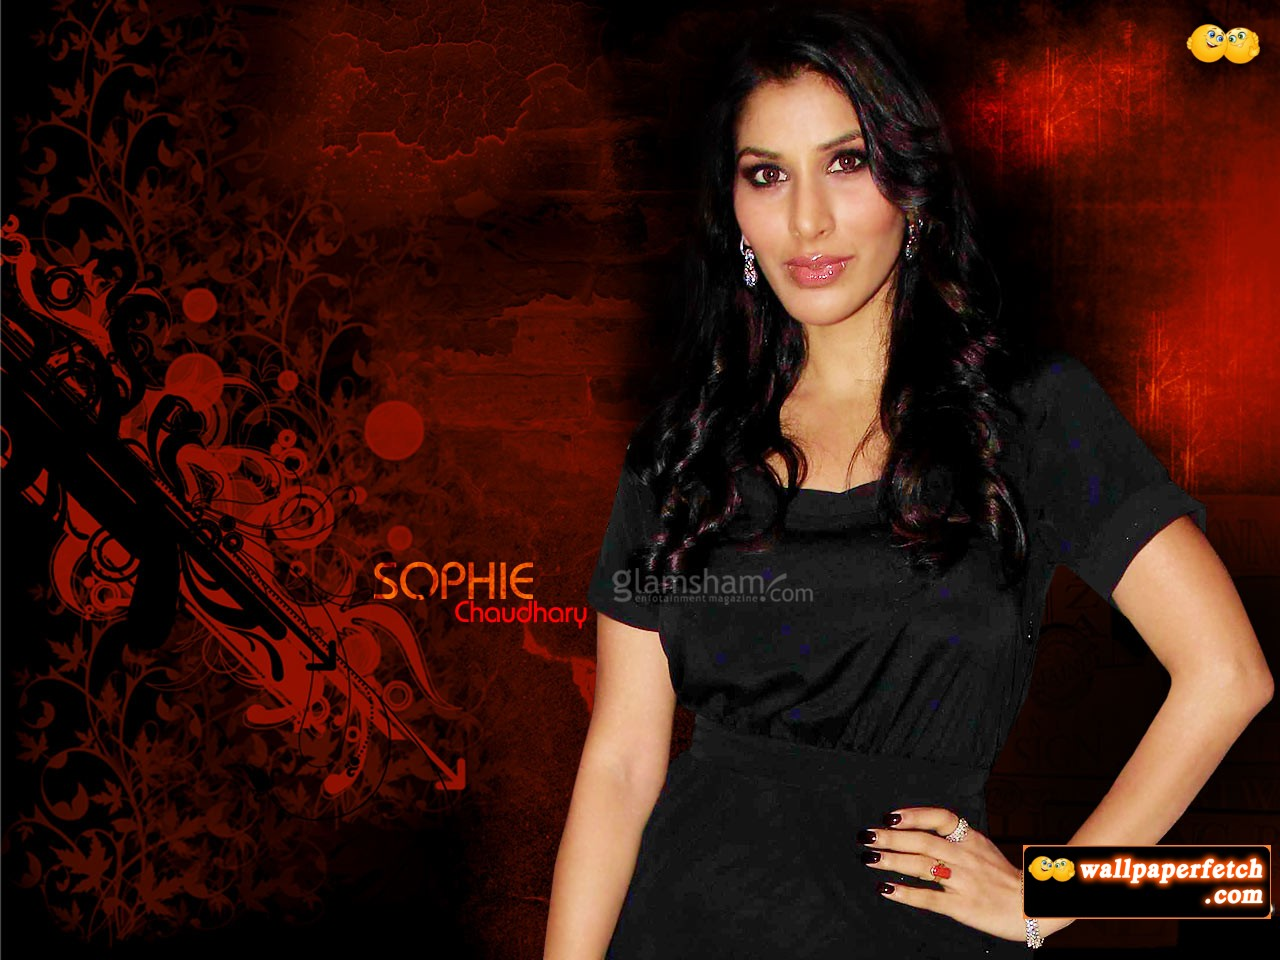 Wallpaper Fetch Sophie Chaudhary Hot Wallpapers 2012-5104